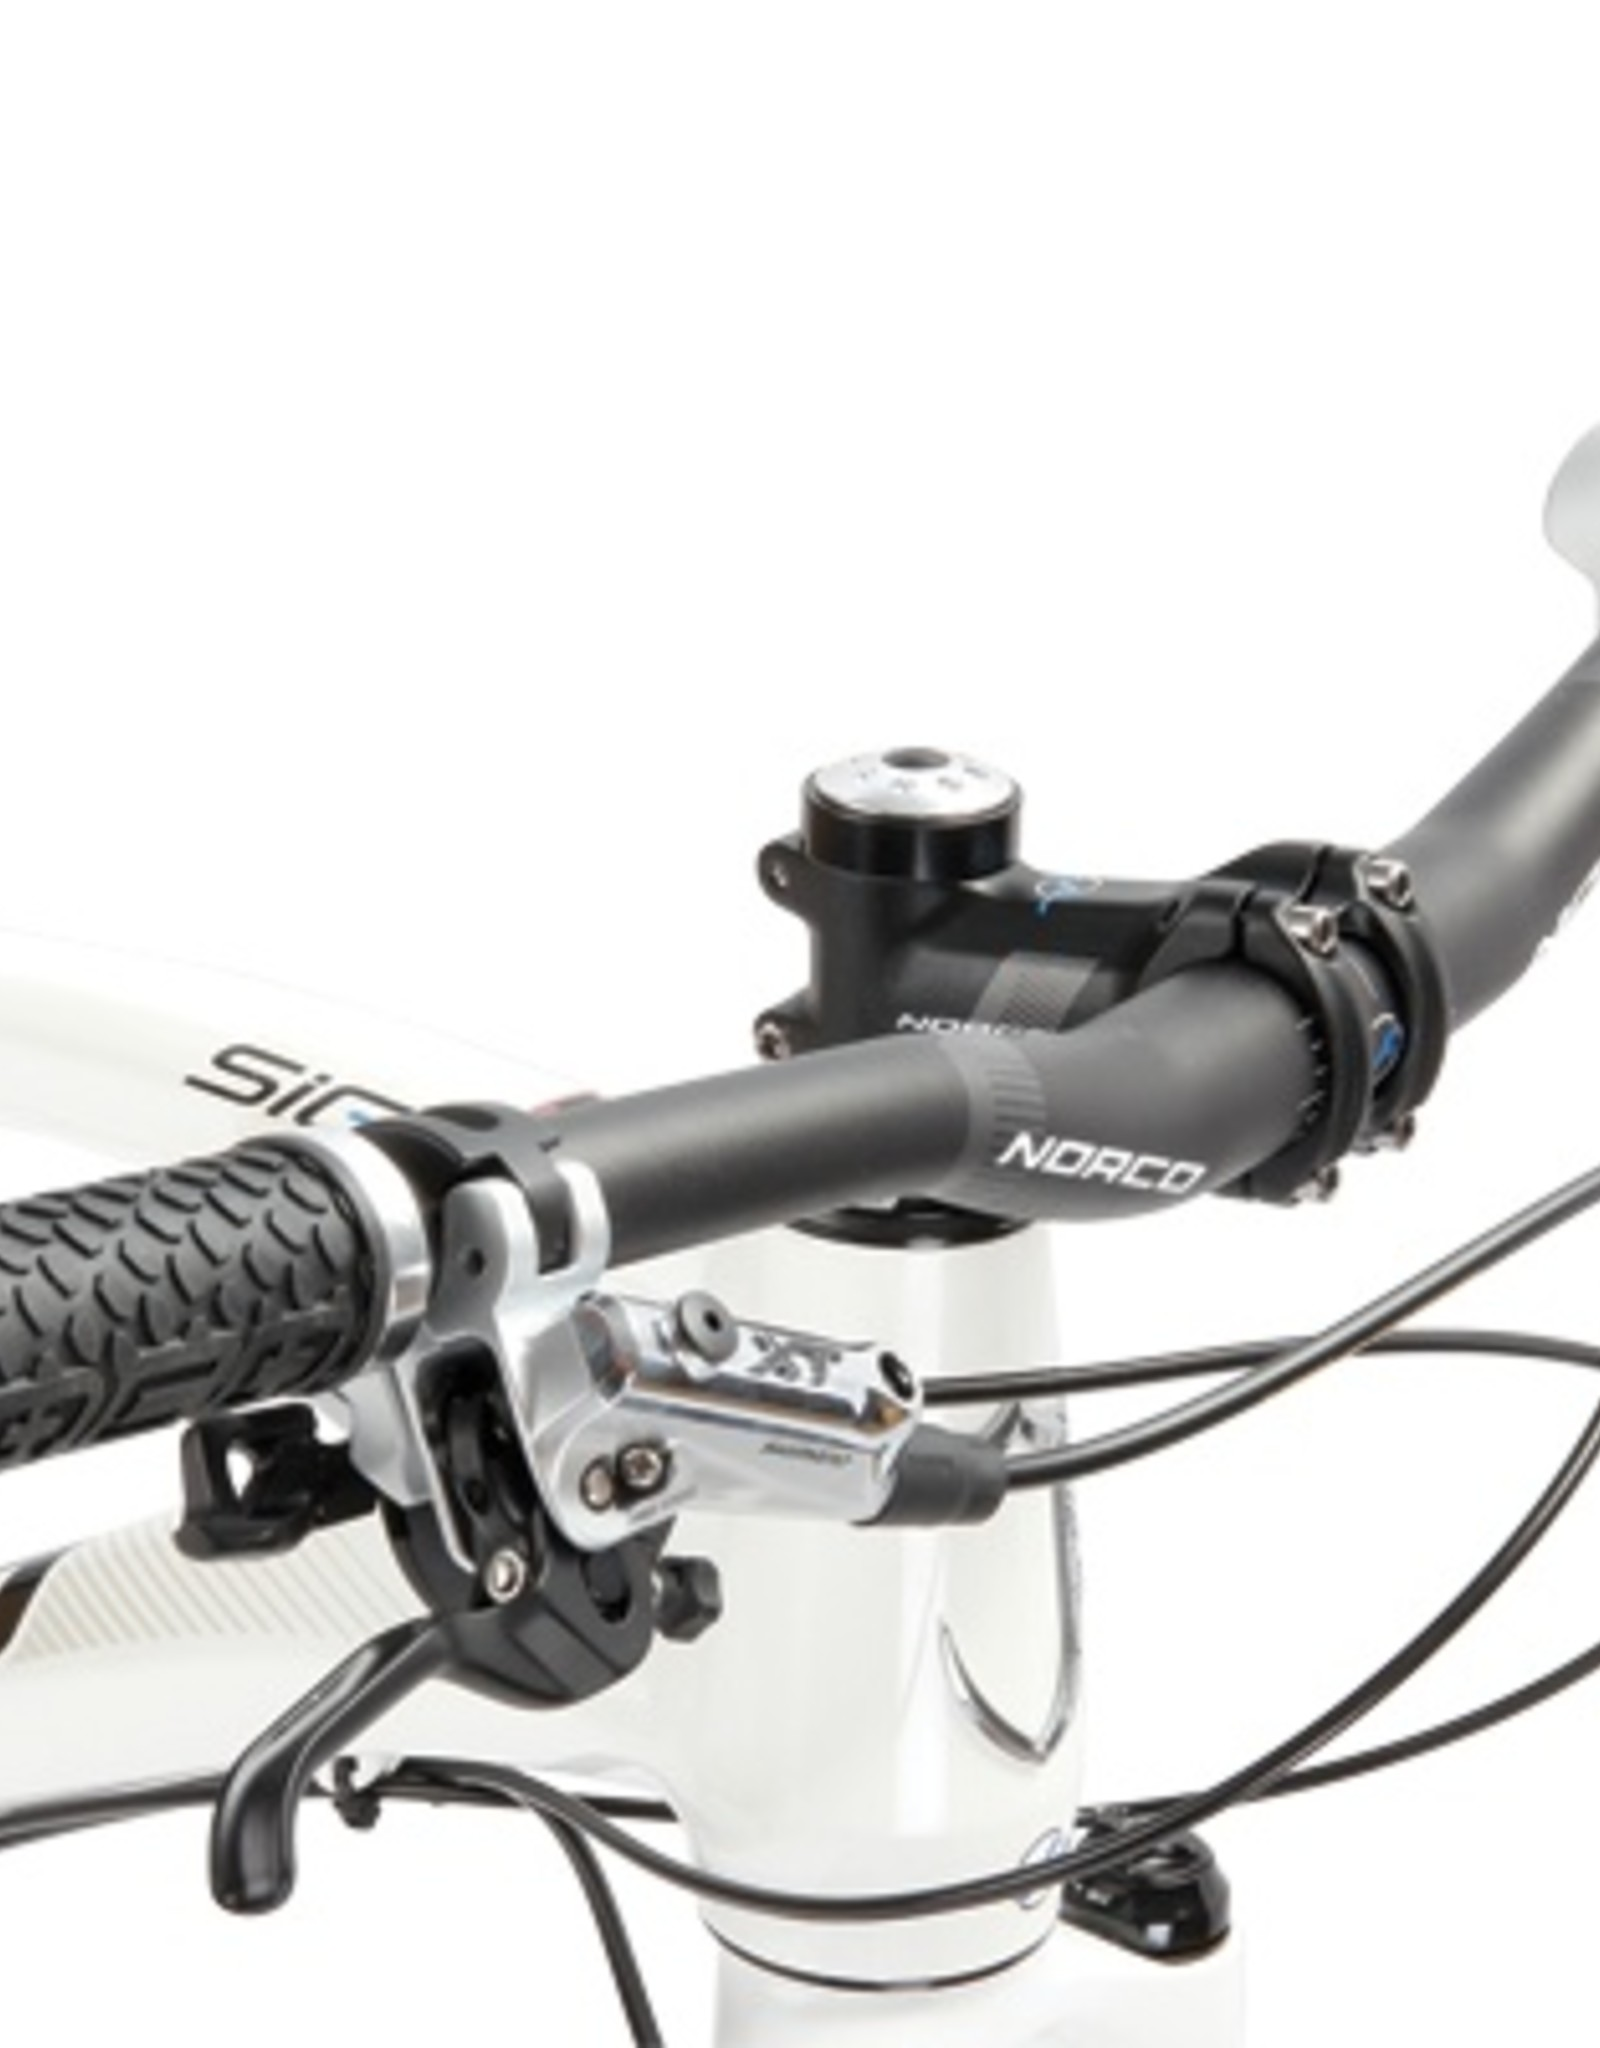 Norco Torrent 8 Deg Back Sweep 5 Deg Up Sweep 35mm Handlebar (Made by Diety)